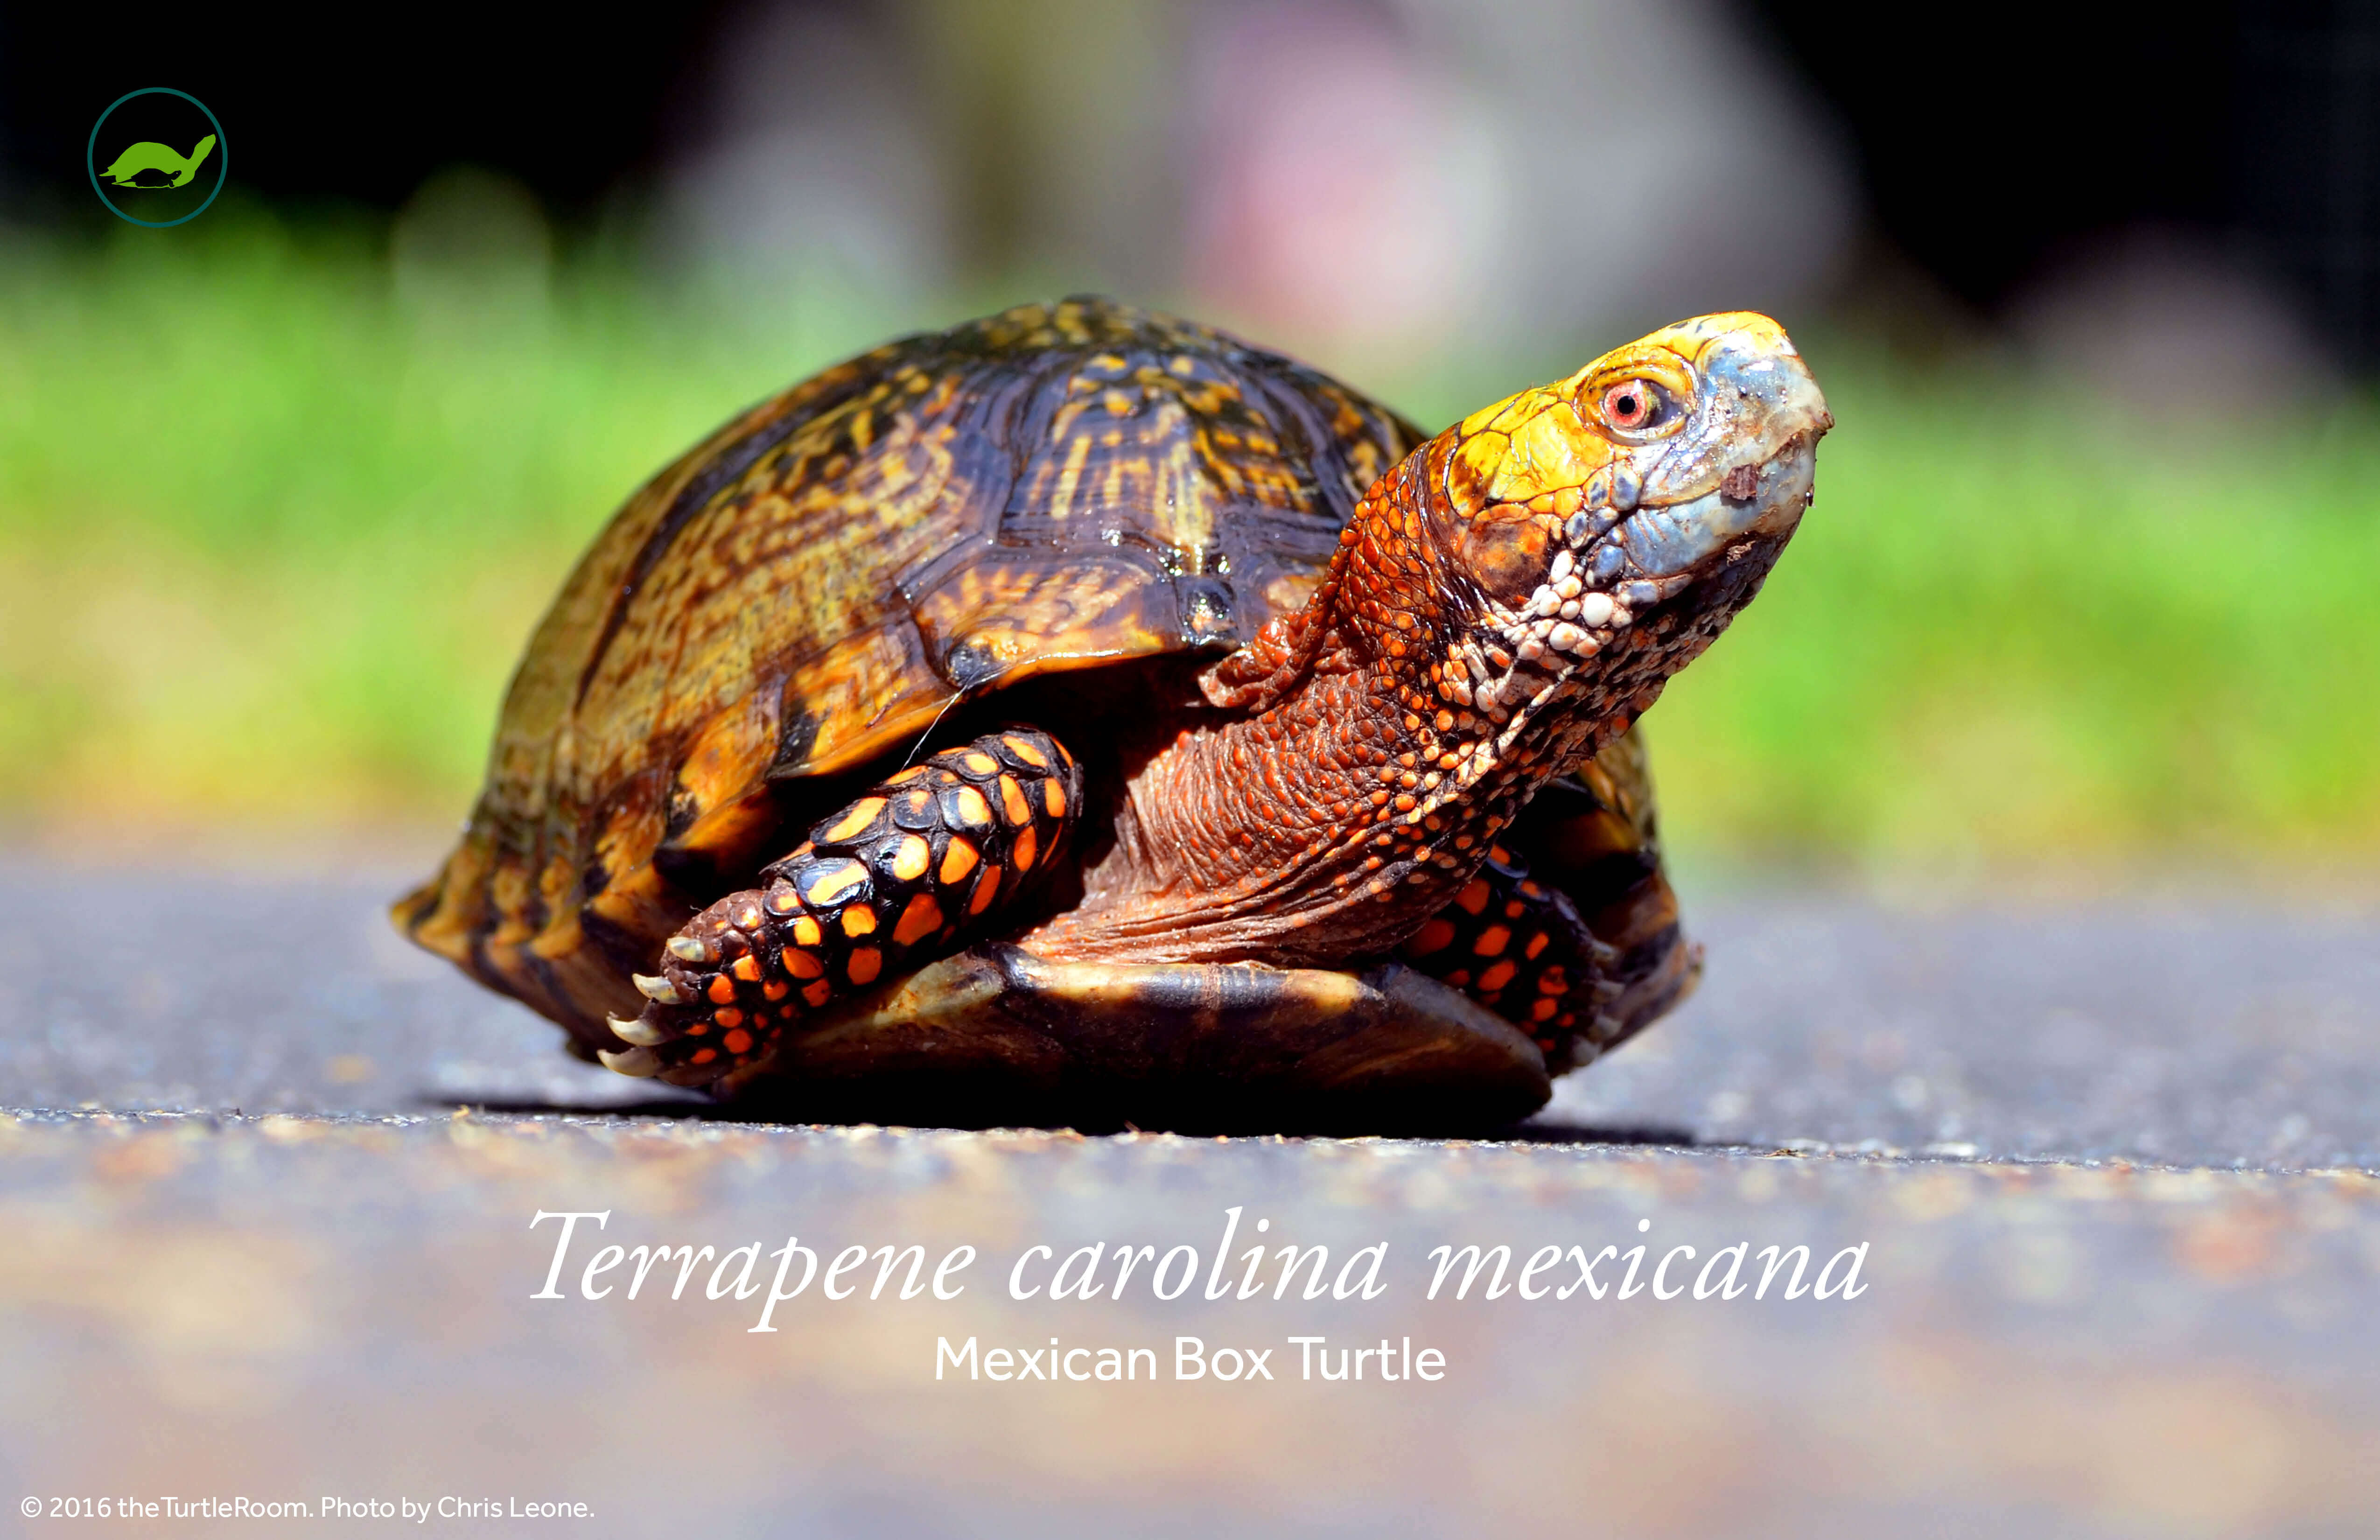 Terrapene carolina mexicana (Mexican Box Turtle) Poster